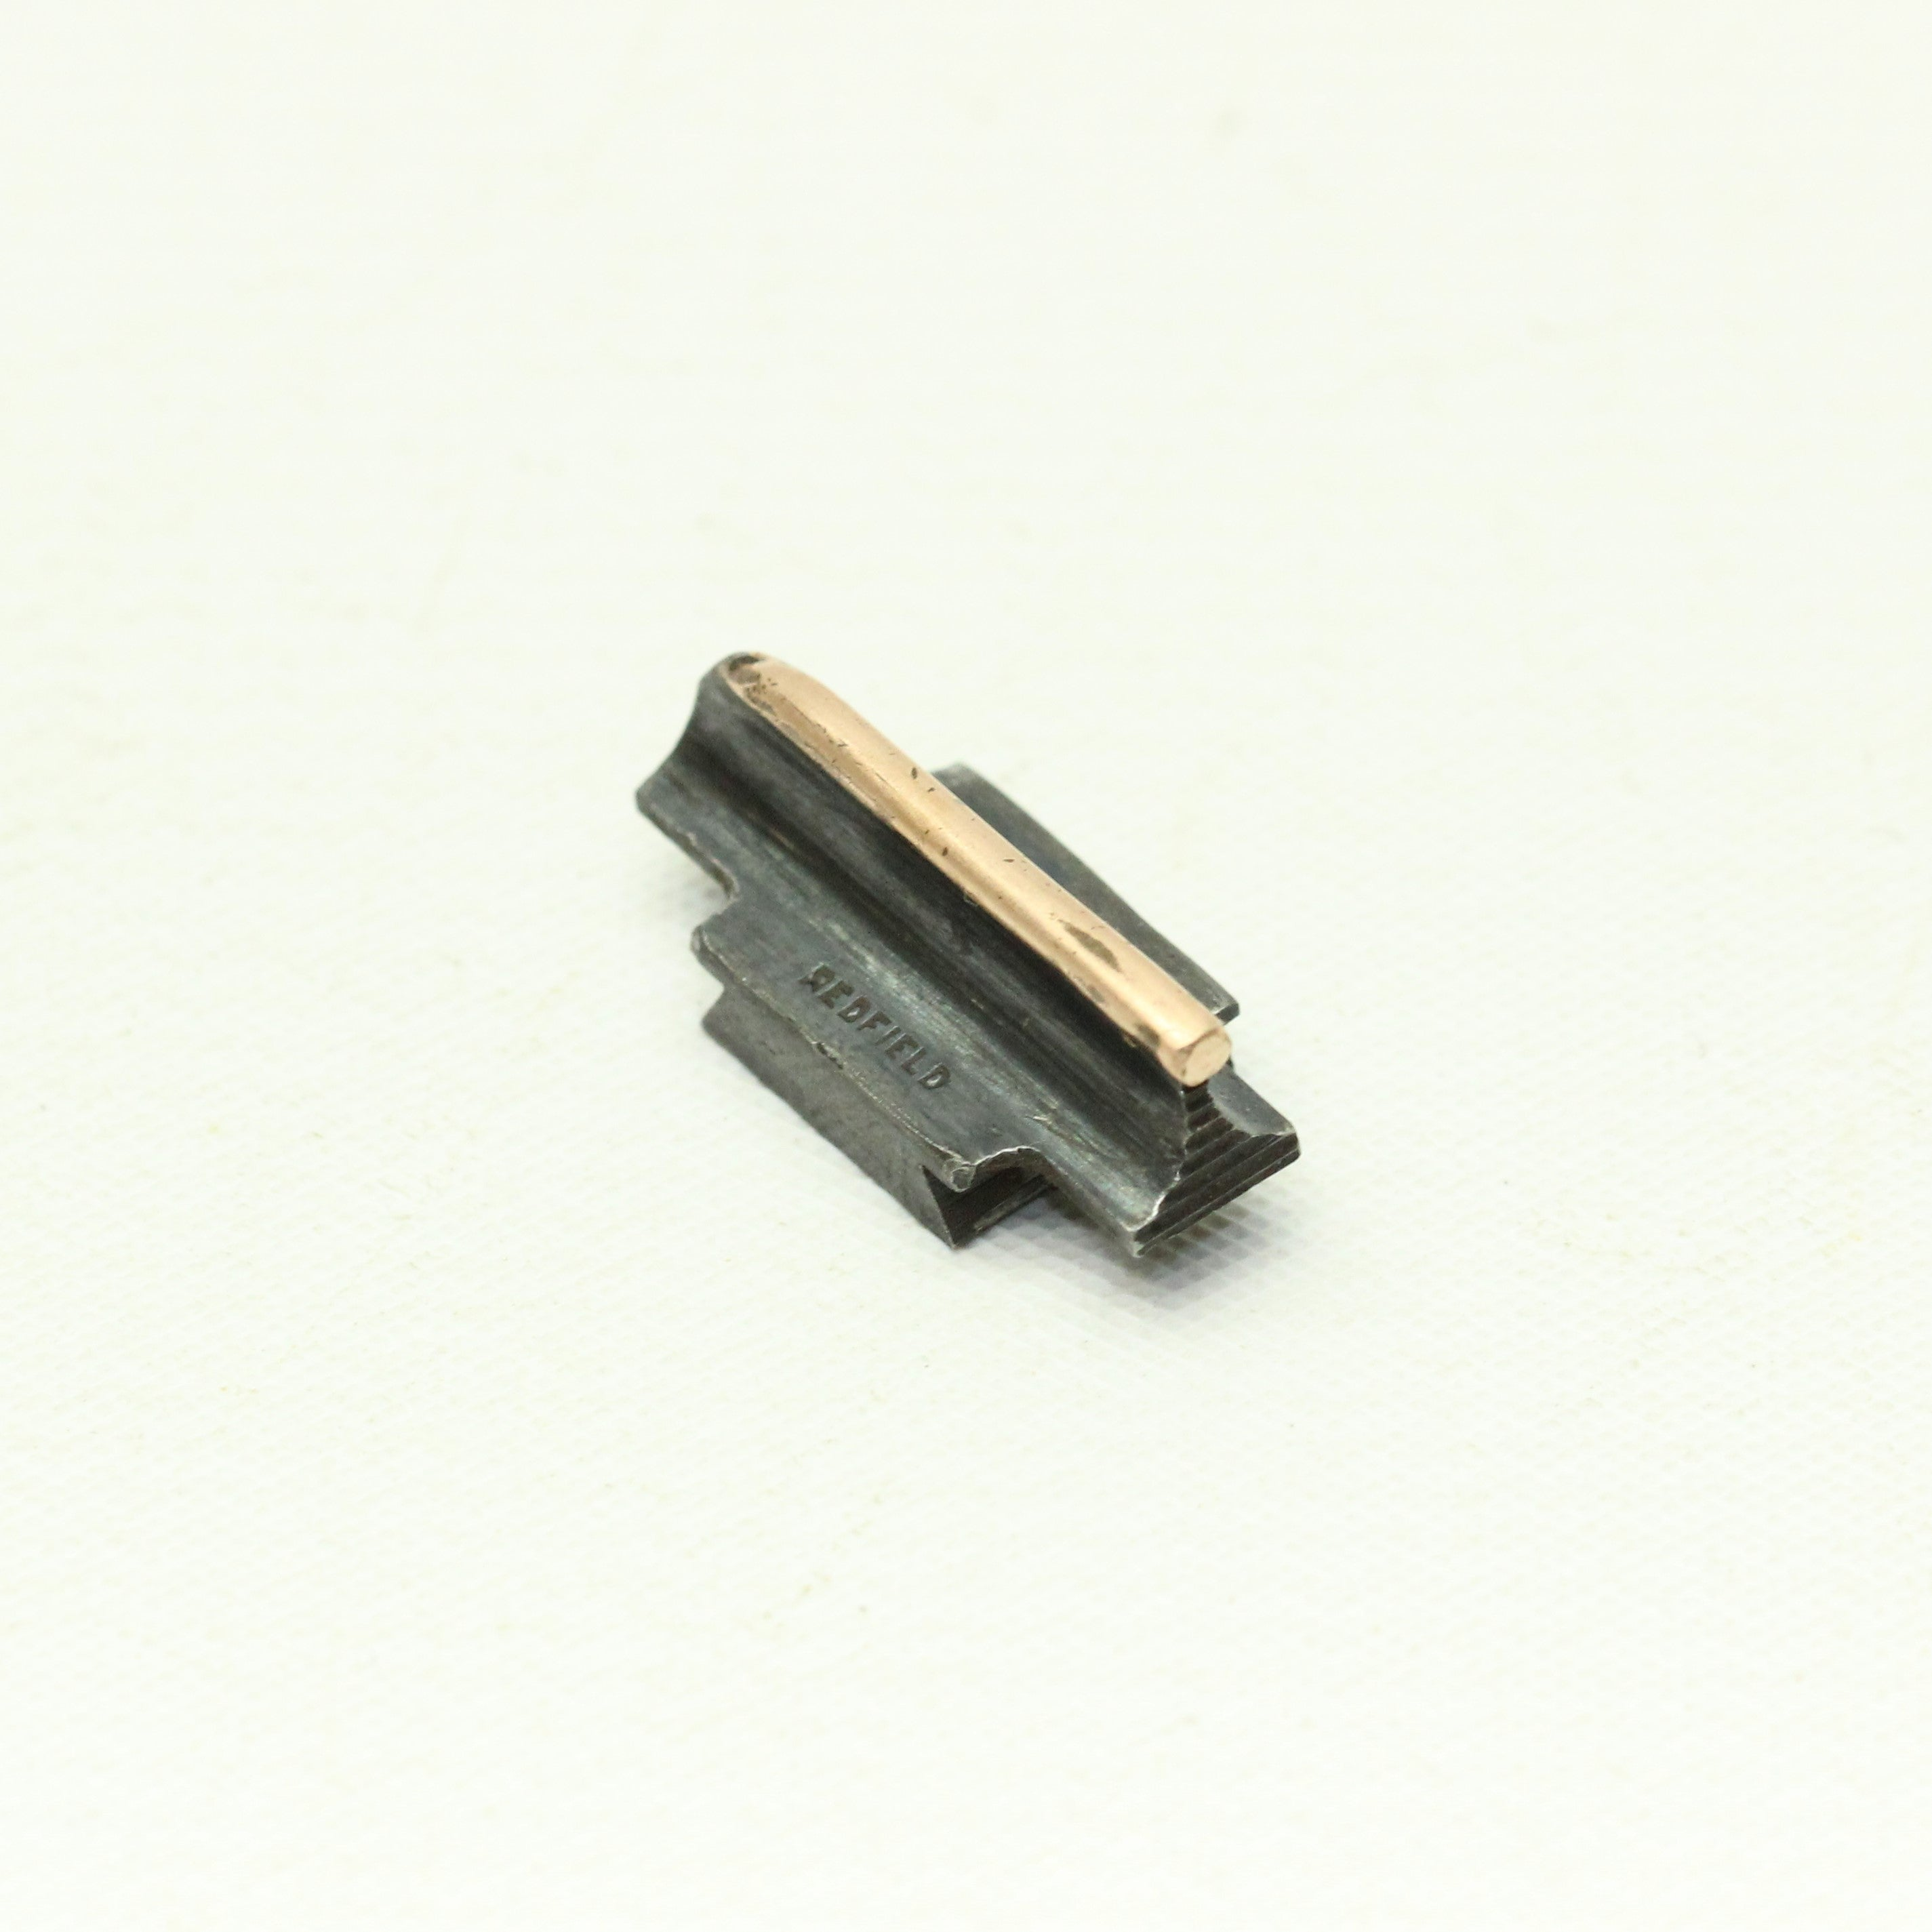 Redfield Gold Bead Front Sight for Super Grade Rifles #254